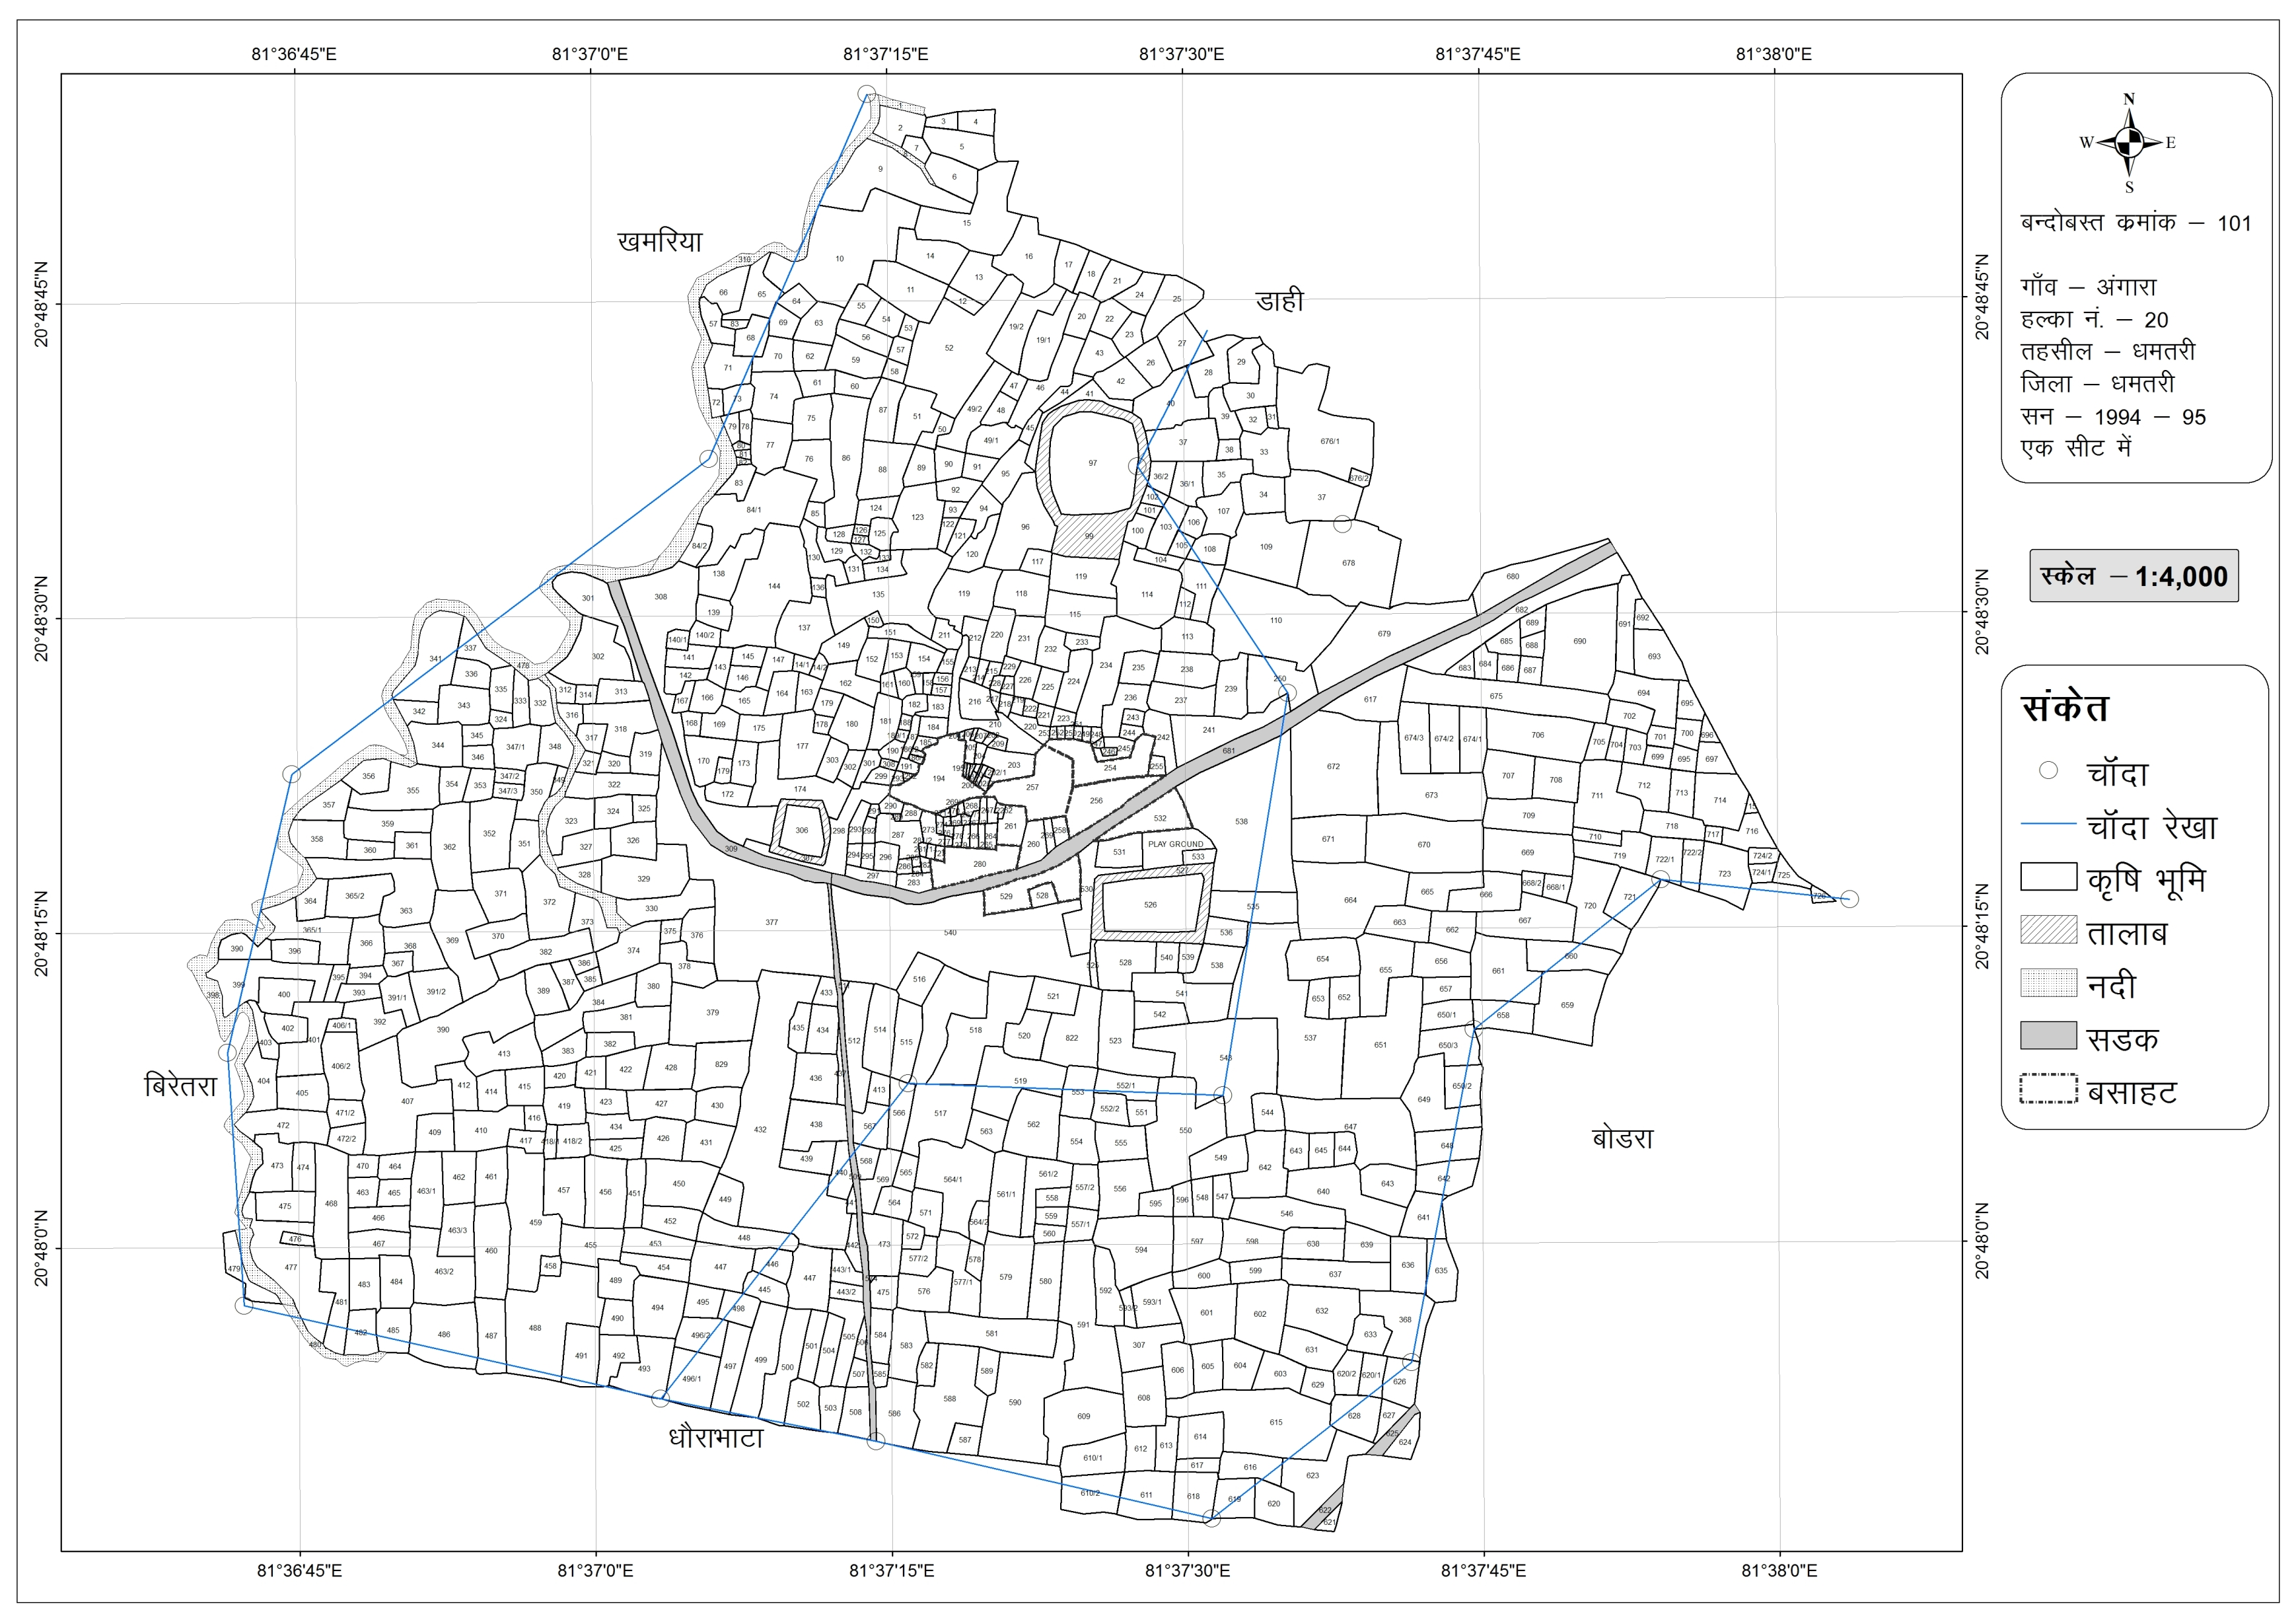 Geo referencing, Digitization and Database Creation for Cadastral Map